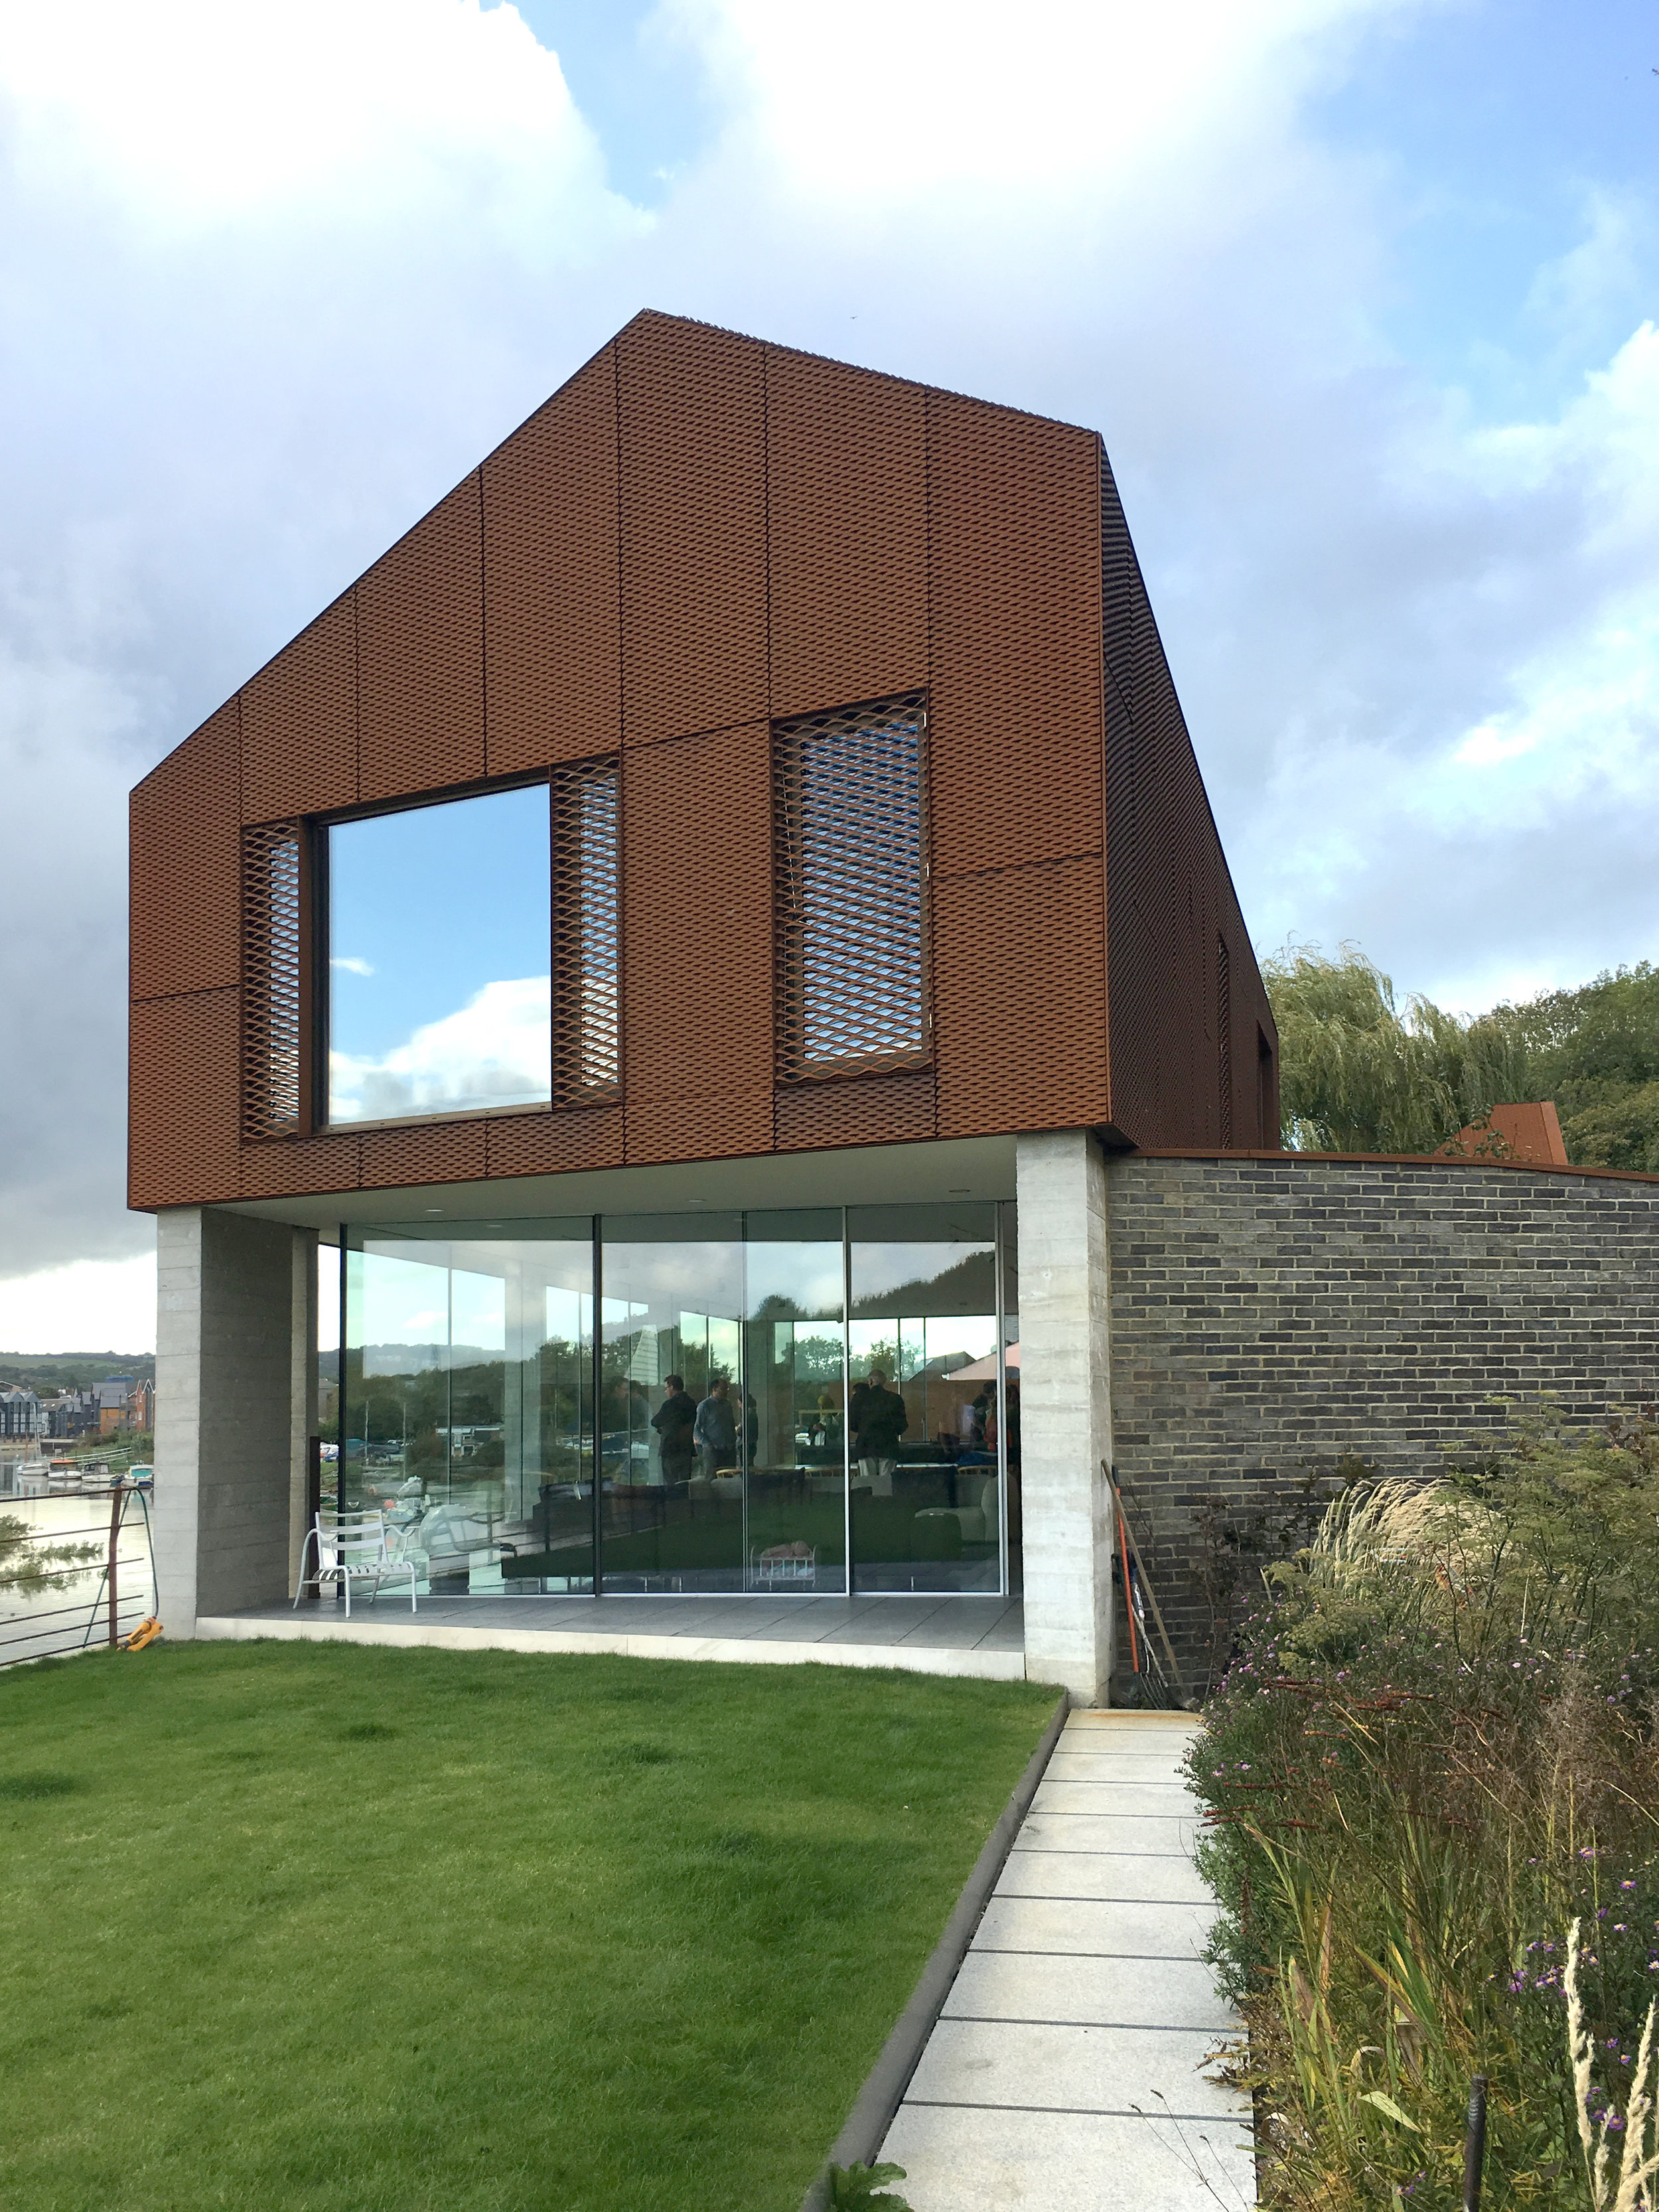 RIBA Sussex Branch visit to see South Street Lewes by Sandy Rendel Architects. Looking out over the River Ouse.